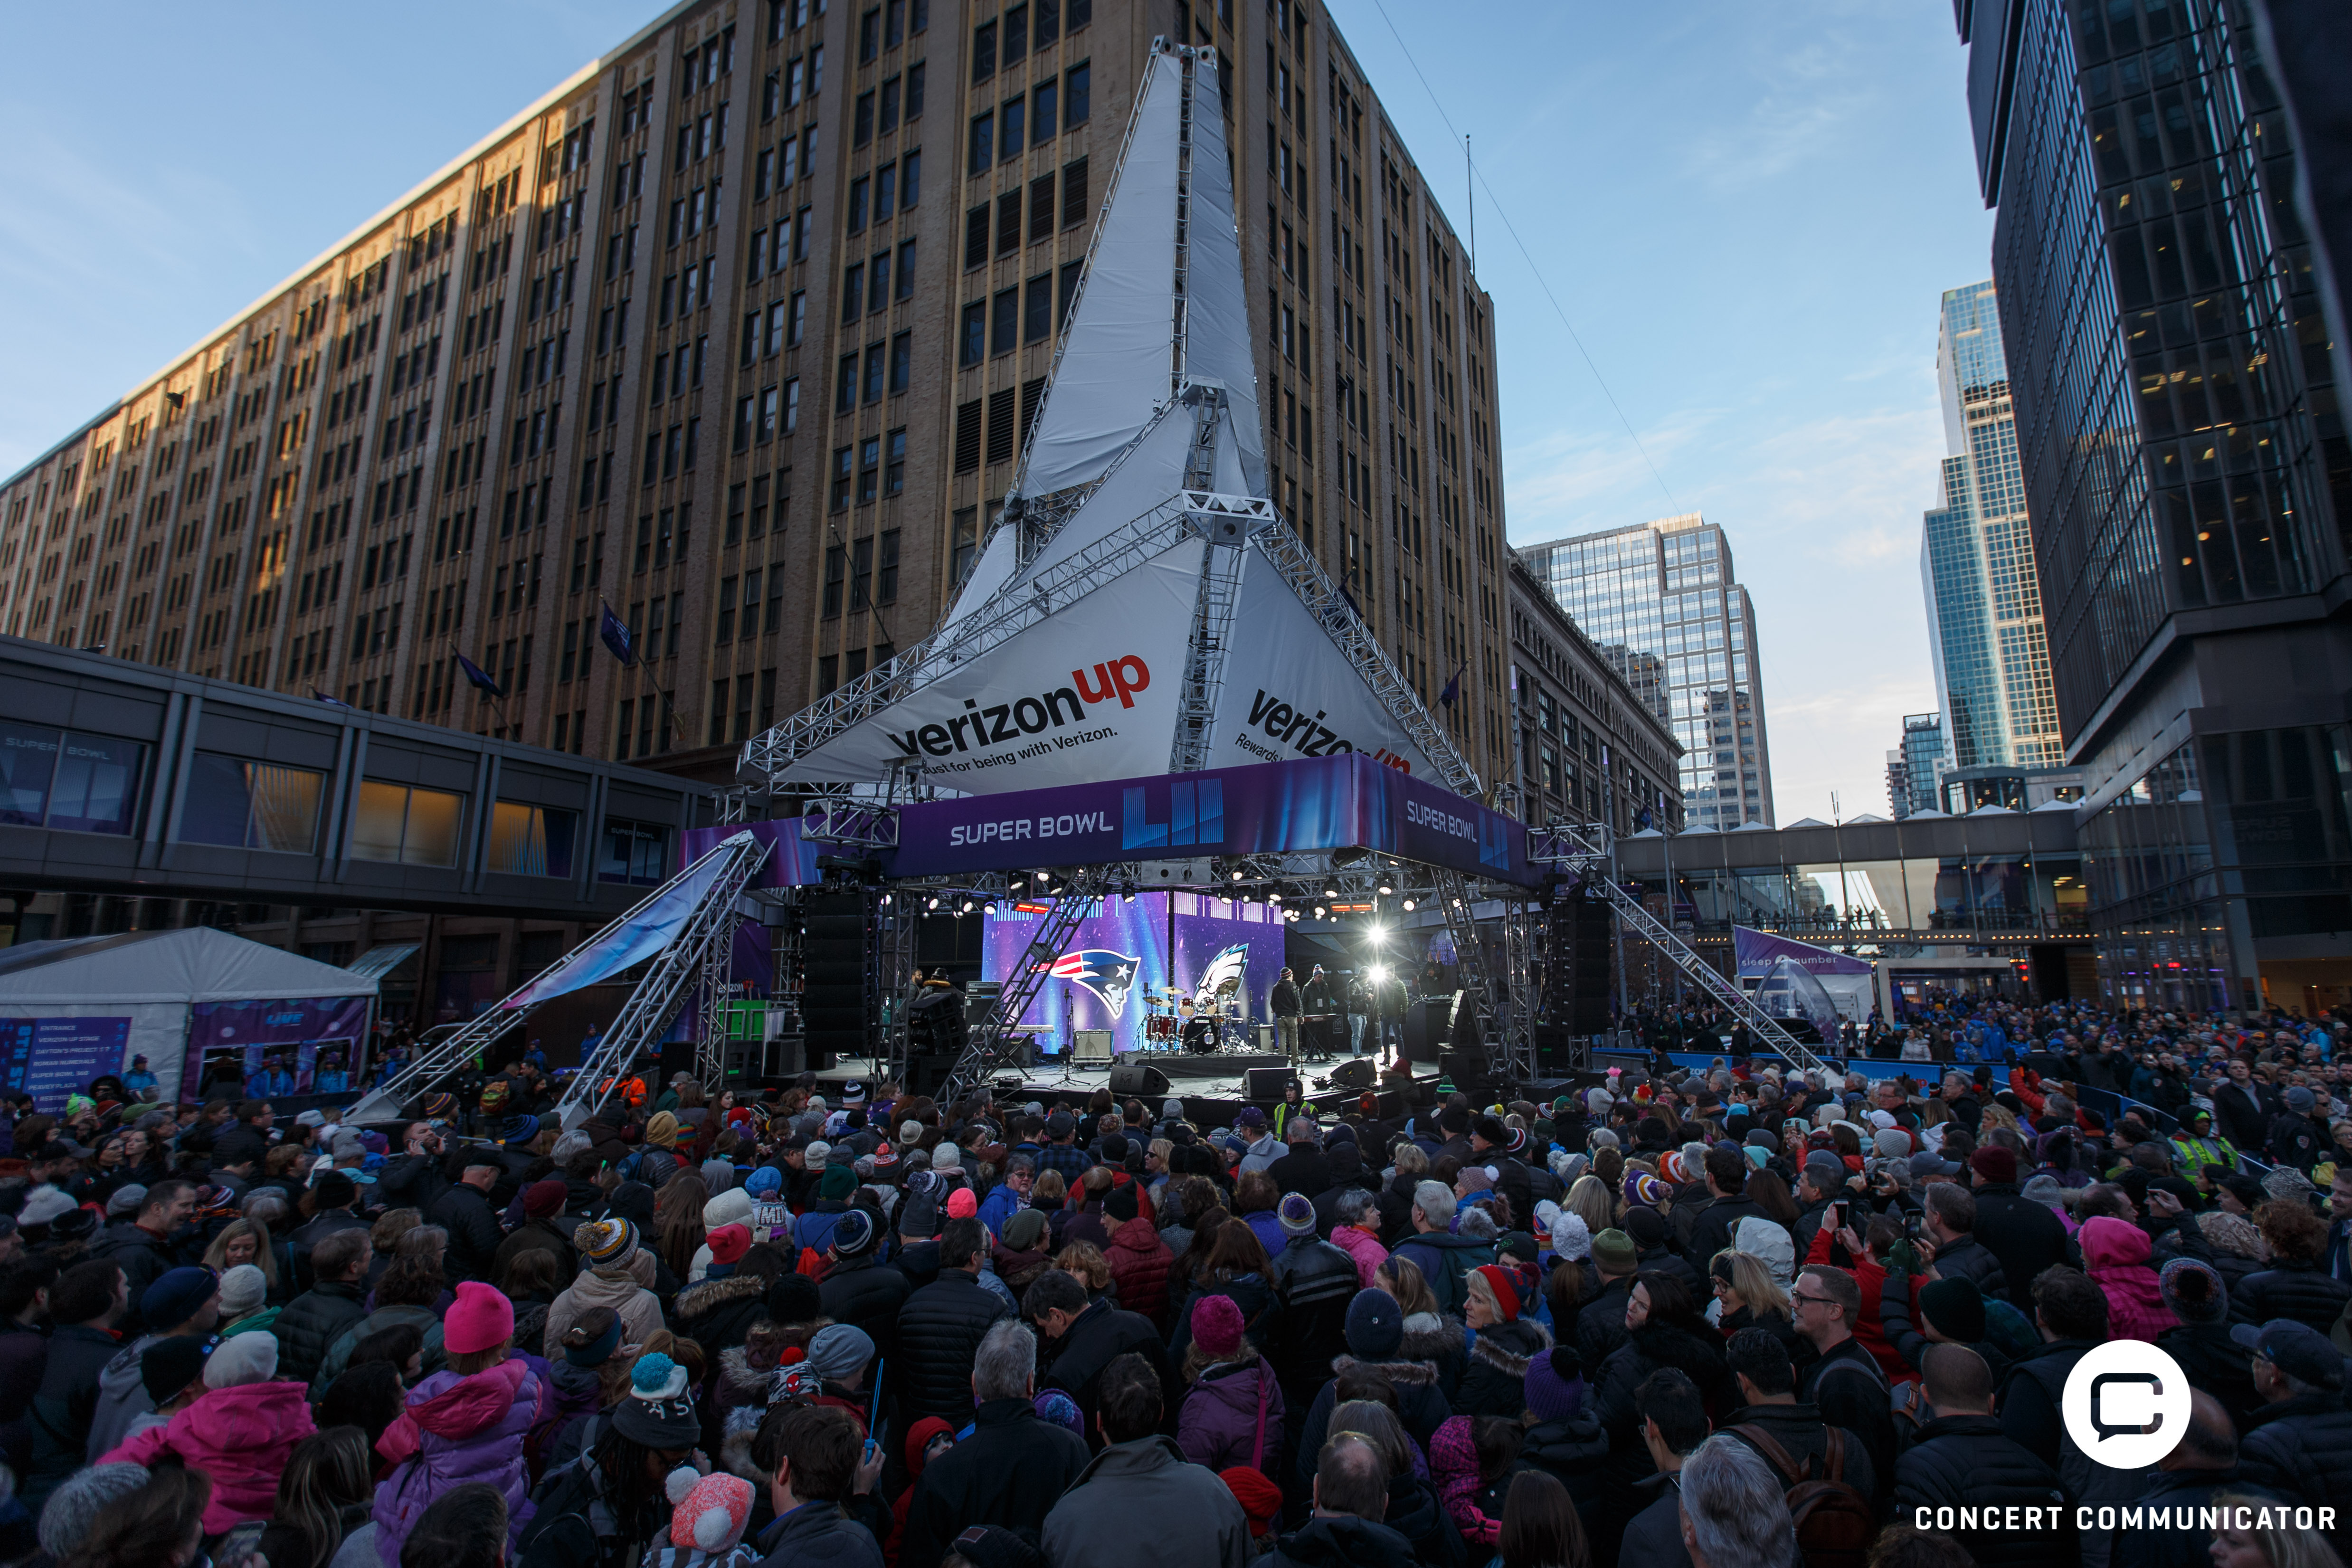 Verizon Up Stage @ Super Bowl Live